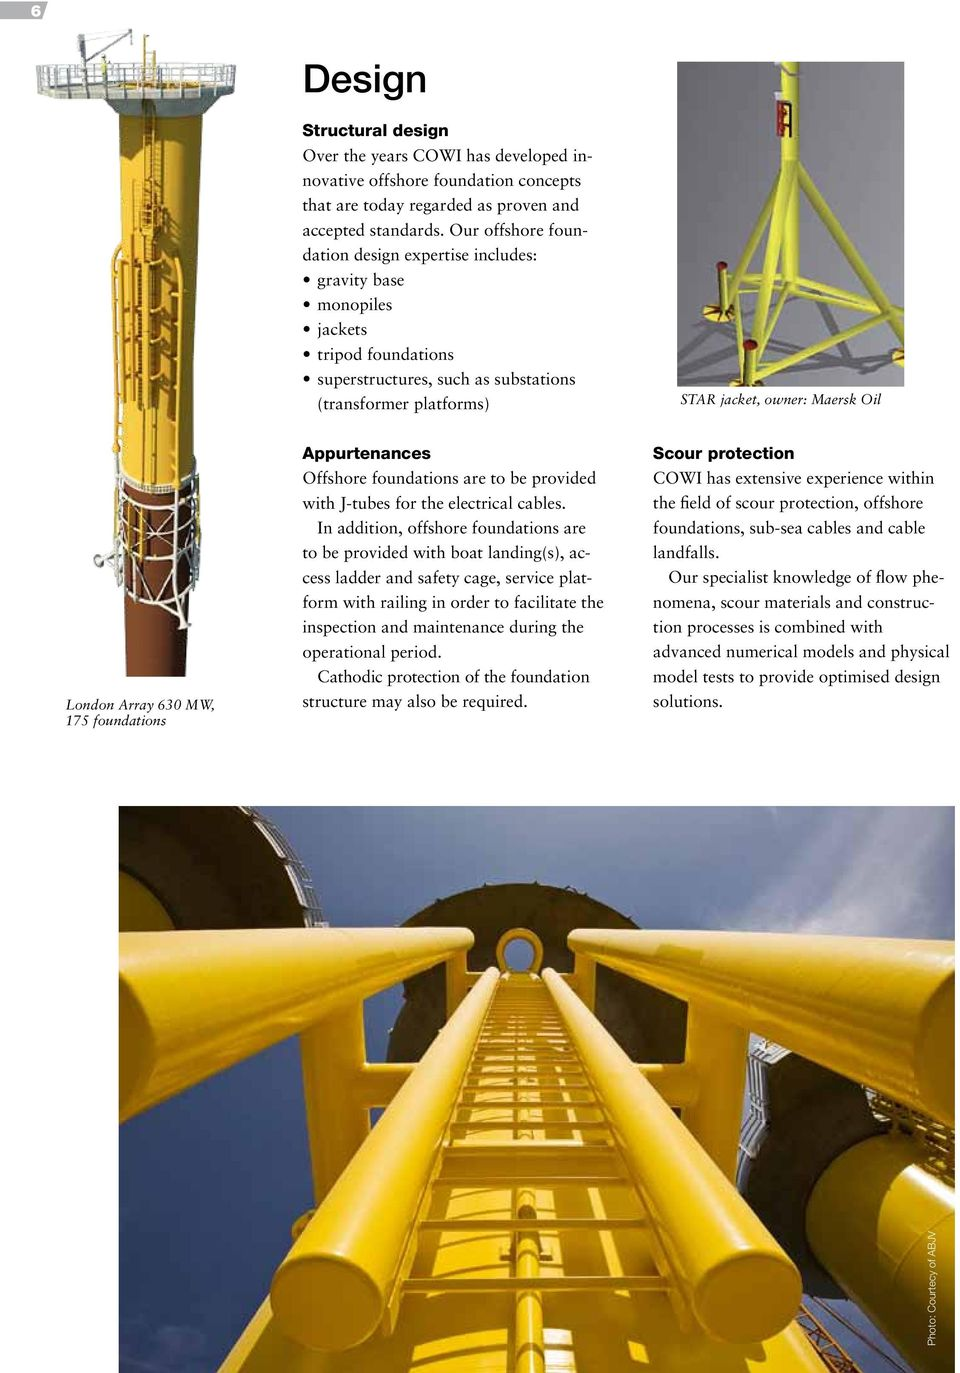 Array 630 MW, 175 foundations Appurtenances Offshore foundations are to be provided with J-tubes for the electrical cables.